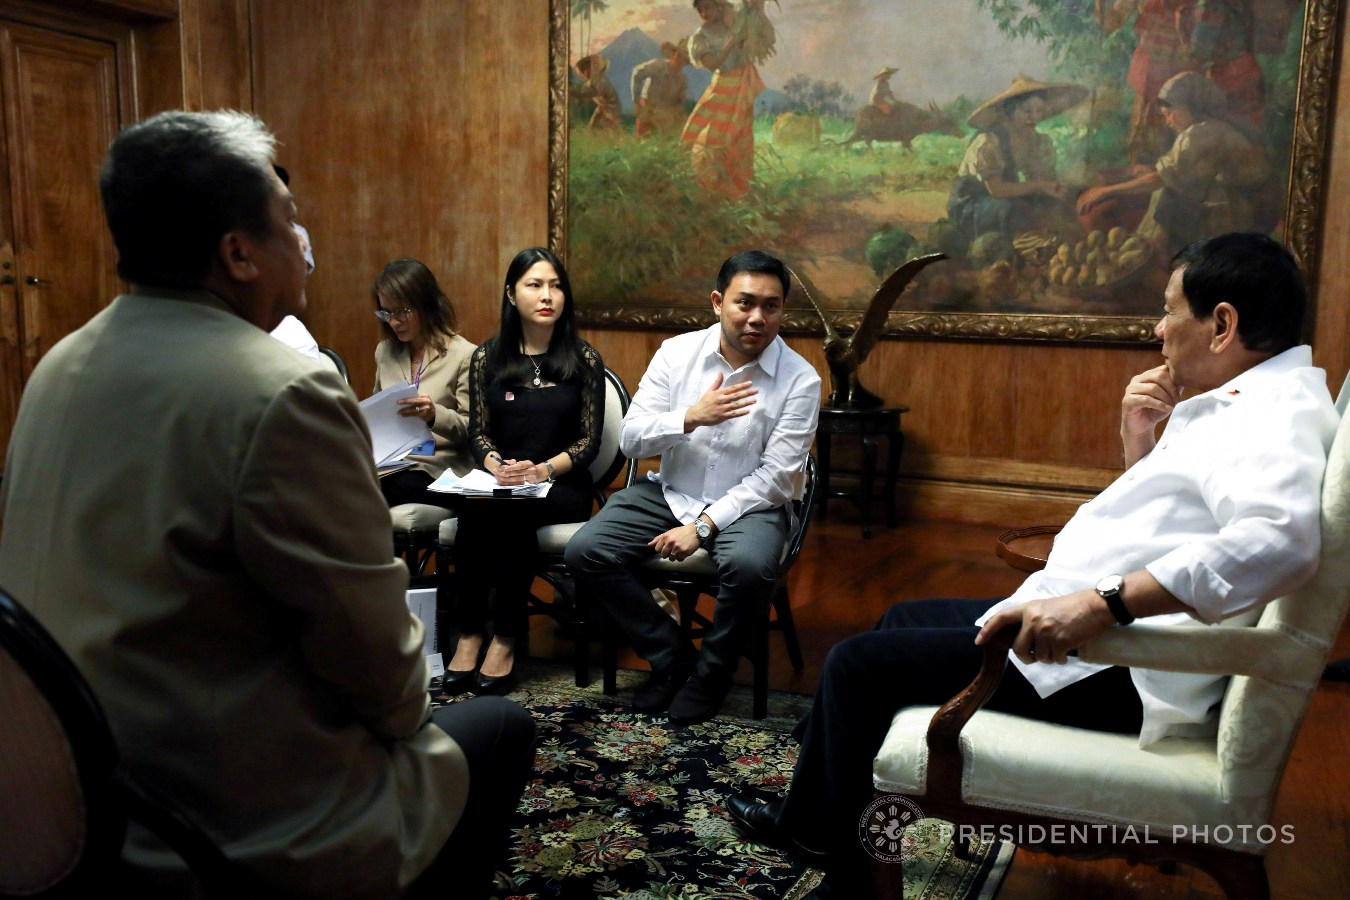 President Rodrigo Roa Duterte holds a meeting with the officials of the Department of Transportation led by Secretary Arthur Tugade, the Metro Manila Development Authority led by its Chairman Danilo Lim, and the Department of Public Works and Highways led by Secretary Mark Villar in Malacañan Palace on November 6, 2017. KARL NORMAN ALONZO/PRESIDENTIAL PHOTO